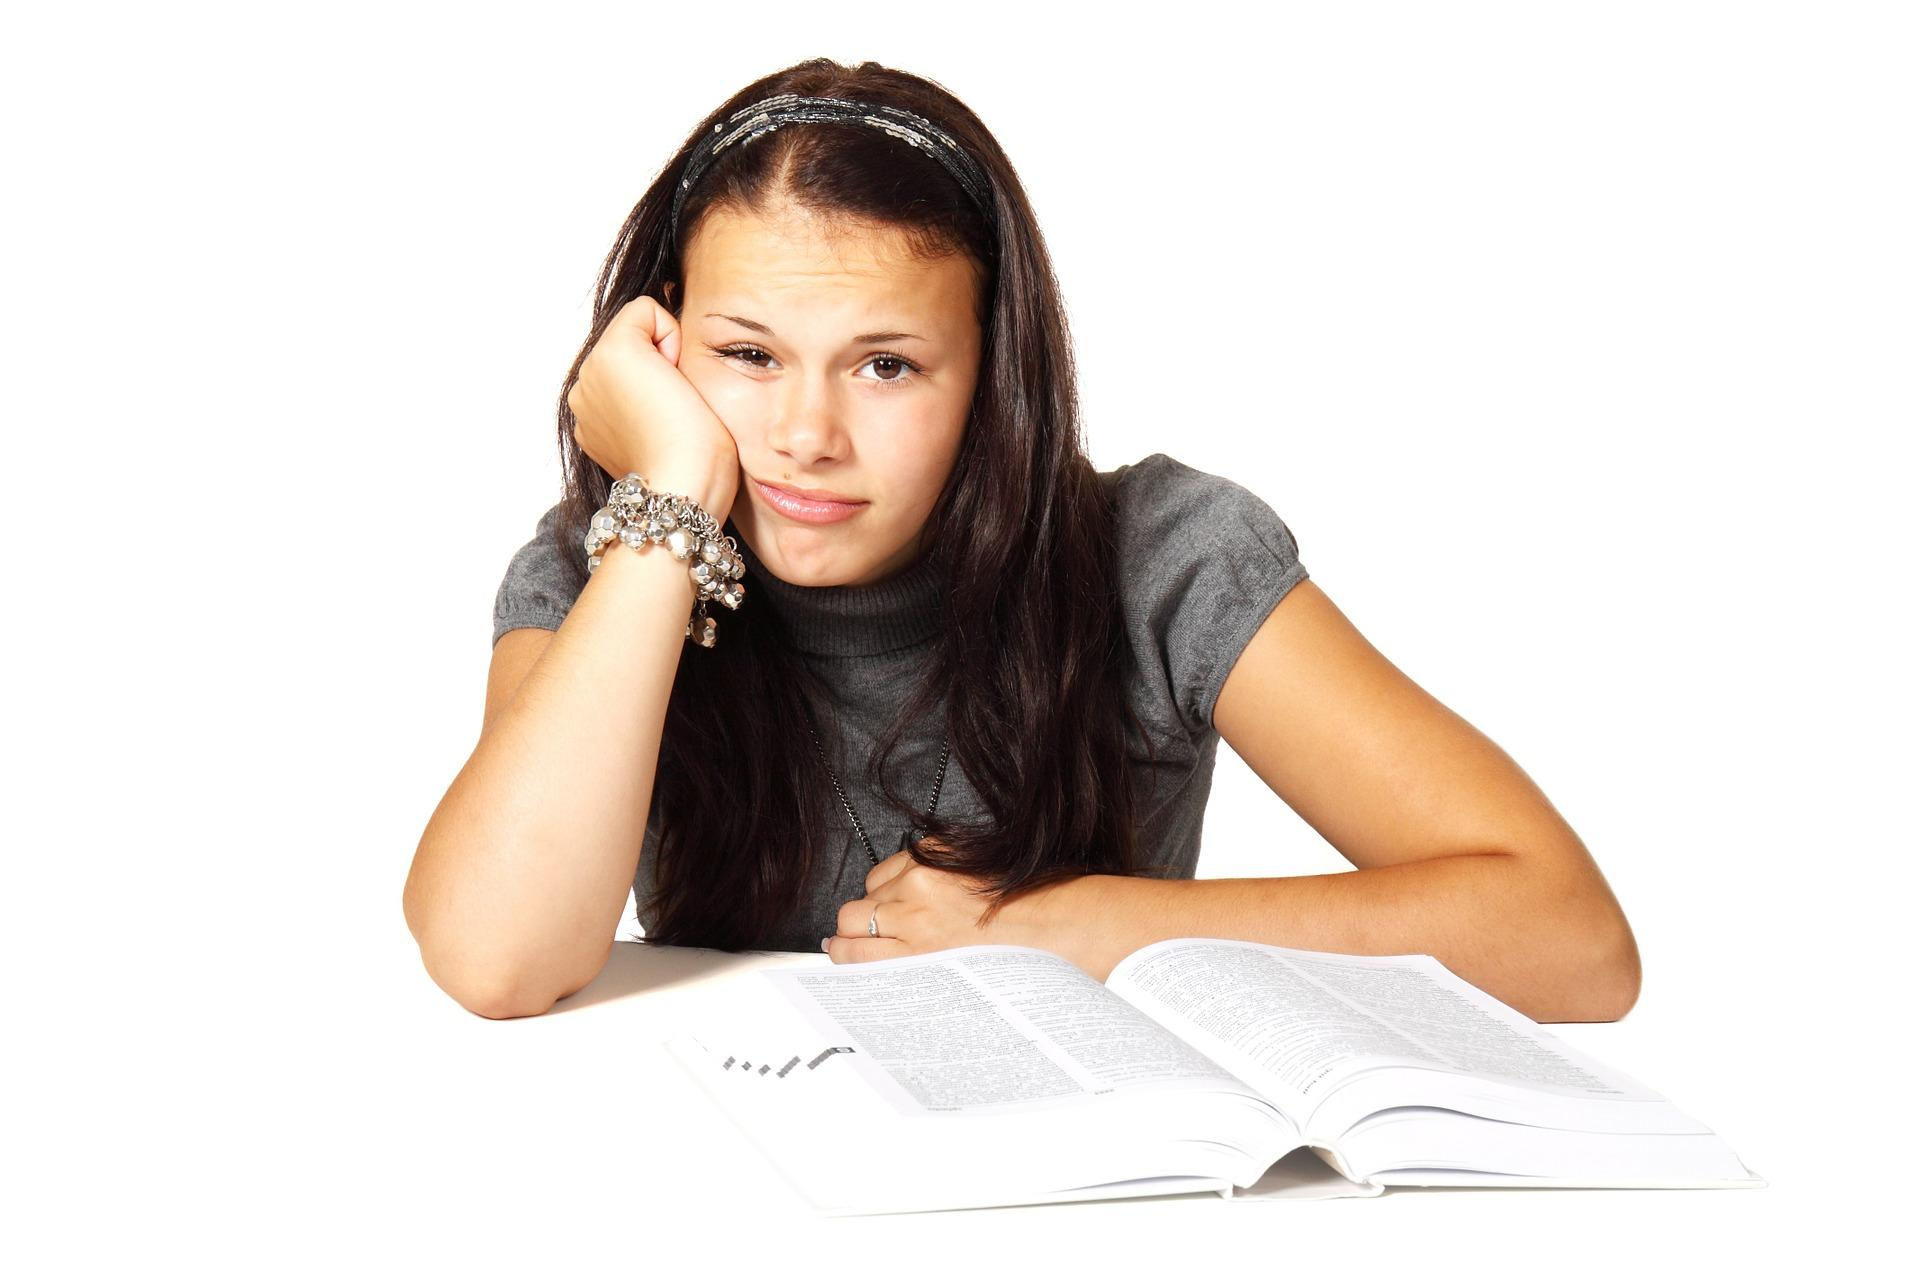 A woman reading a textbook rests her head on her hand.